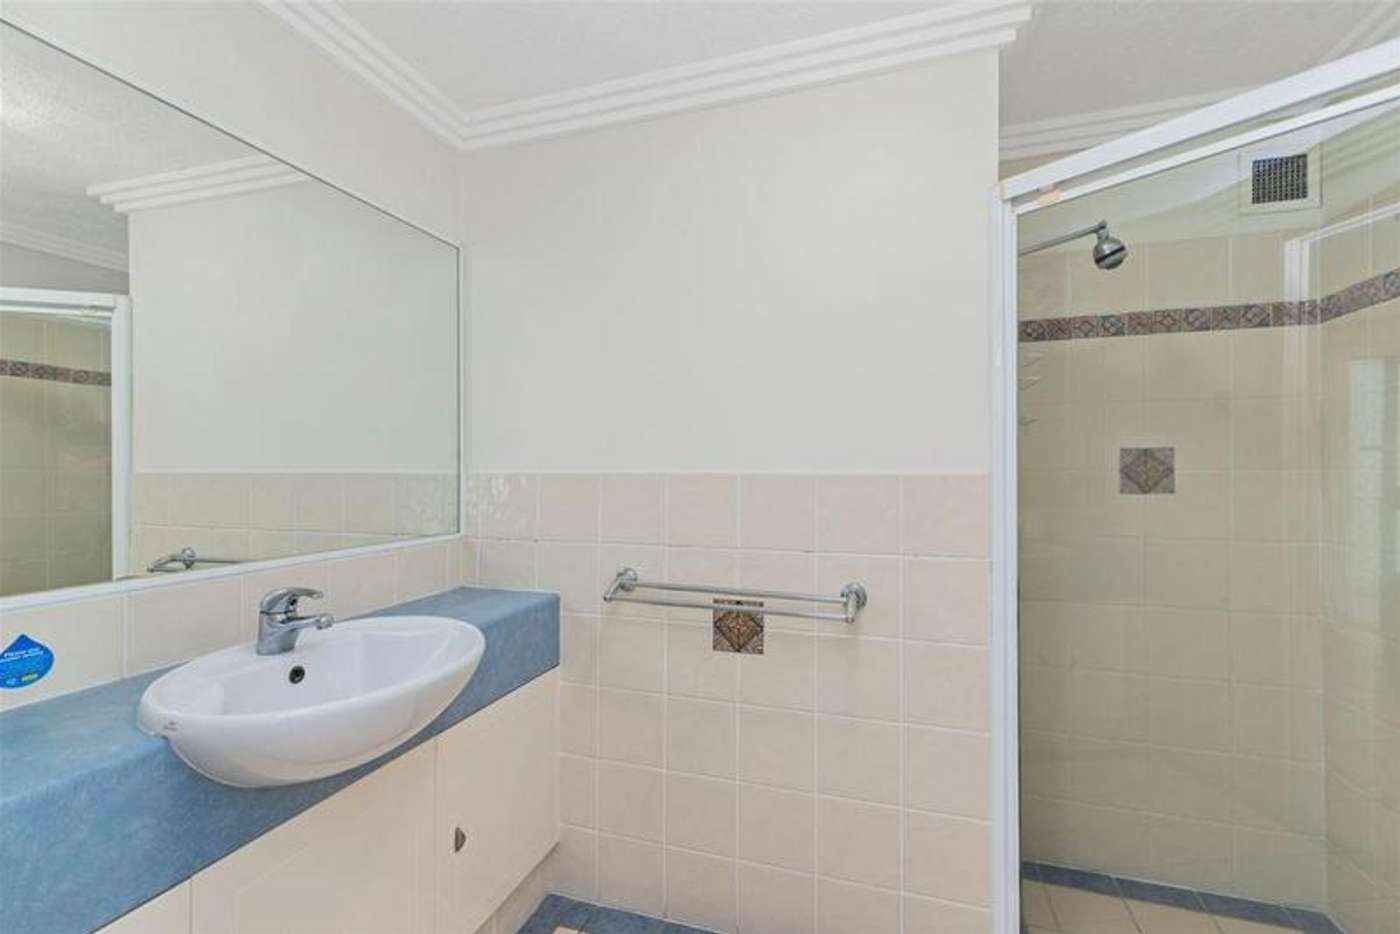 Sixth view of Homely apartment listing, 402/1483 Gold Coast Highway, Palm Beach QLD 4221